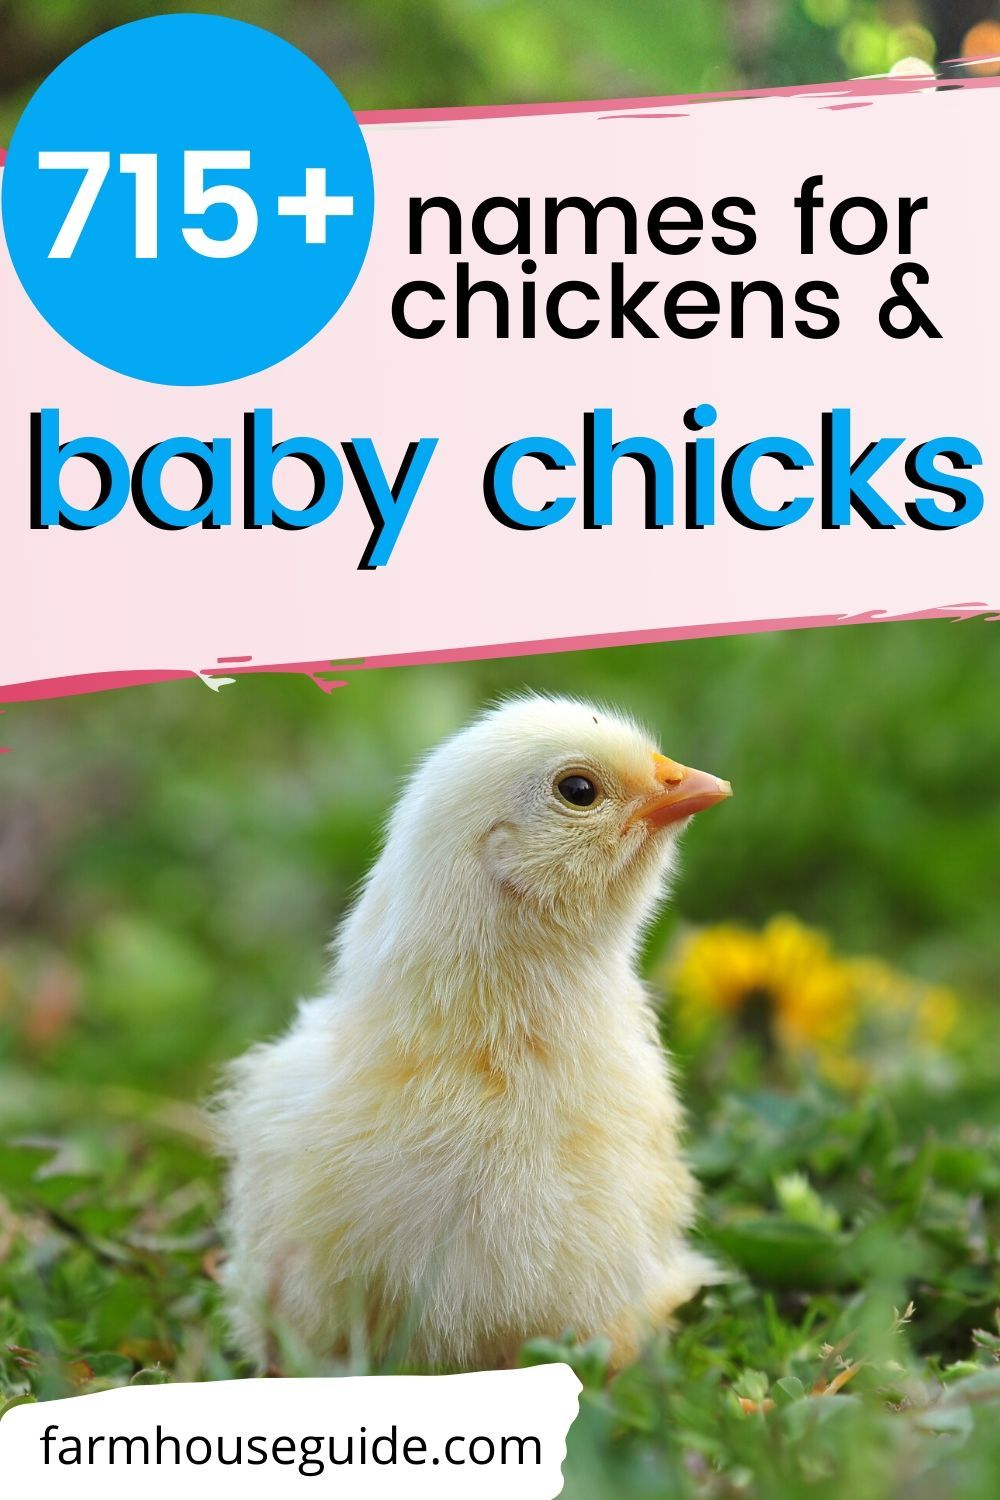 715+ Names for Chickens and Baby Chicks in 2020 | Cute ...